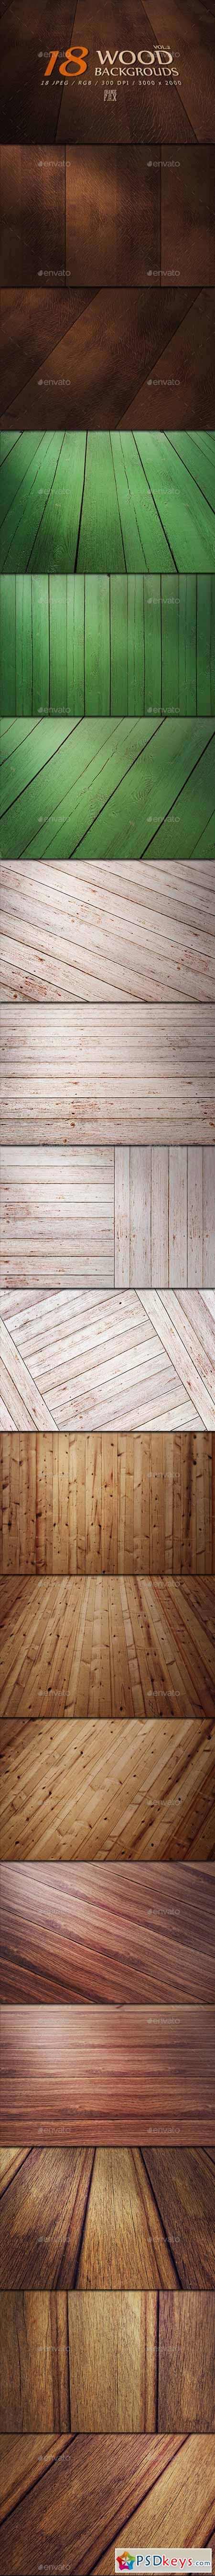 18 Wood Backgrounds - VOL.2 13240678